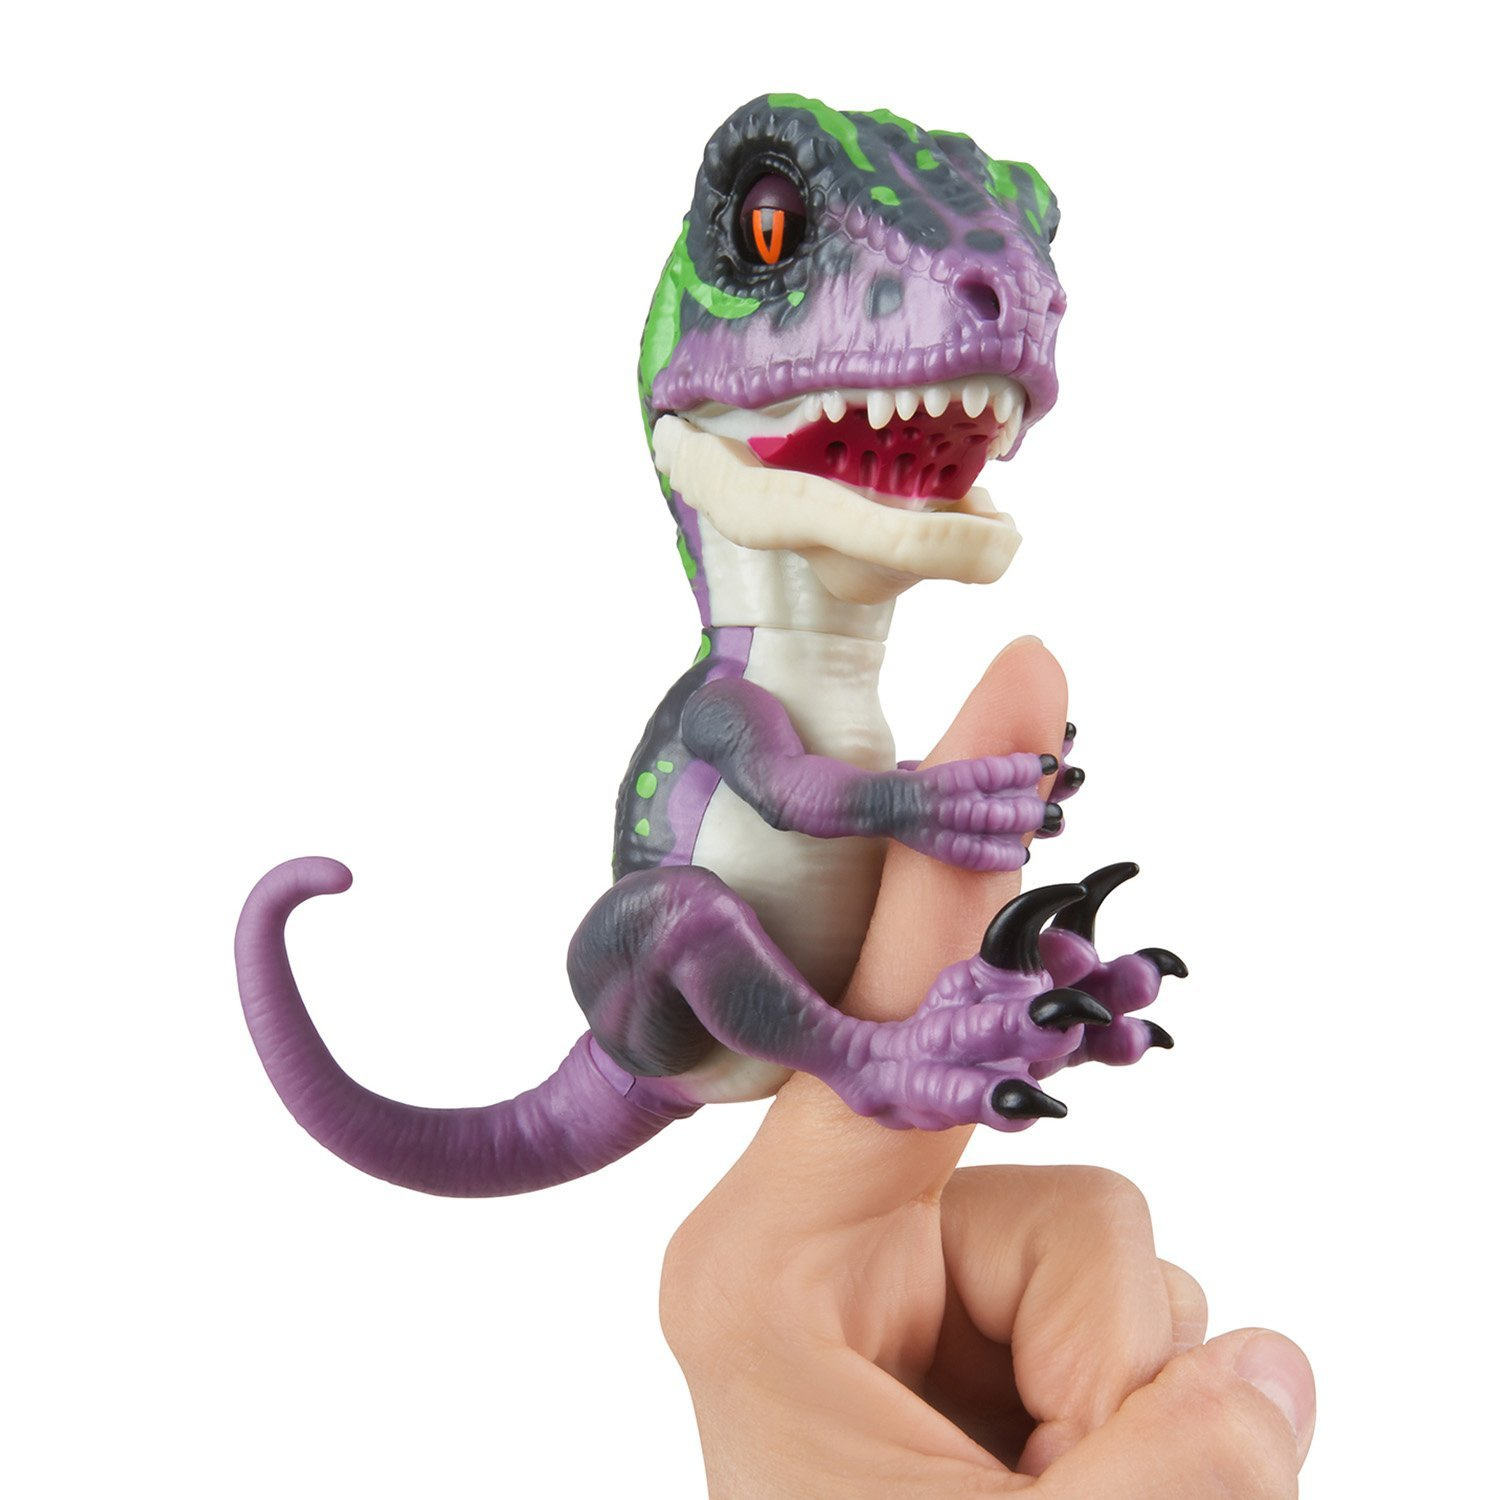 Untamed Raptor by Fingerlings - Razor (Purple) - Interactive Collectible Dinosaur - By WowWee